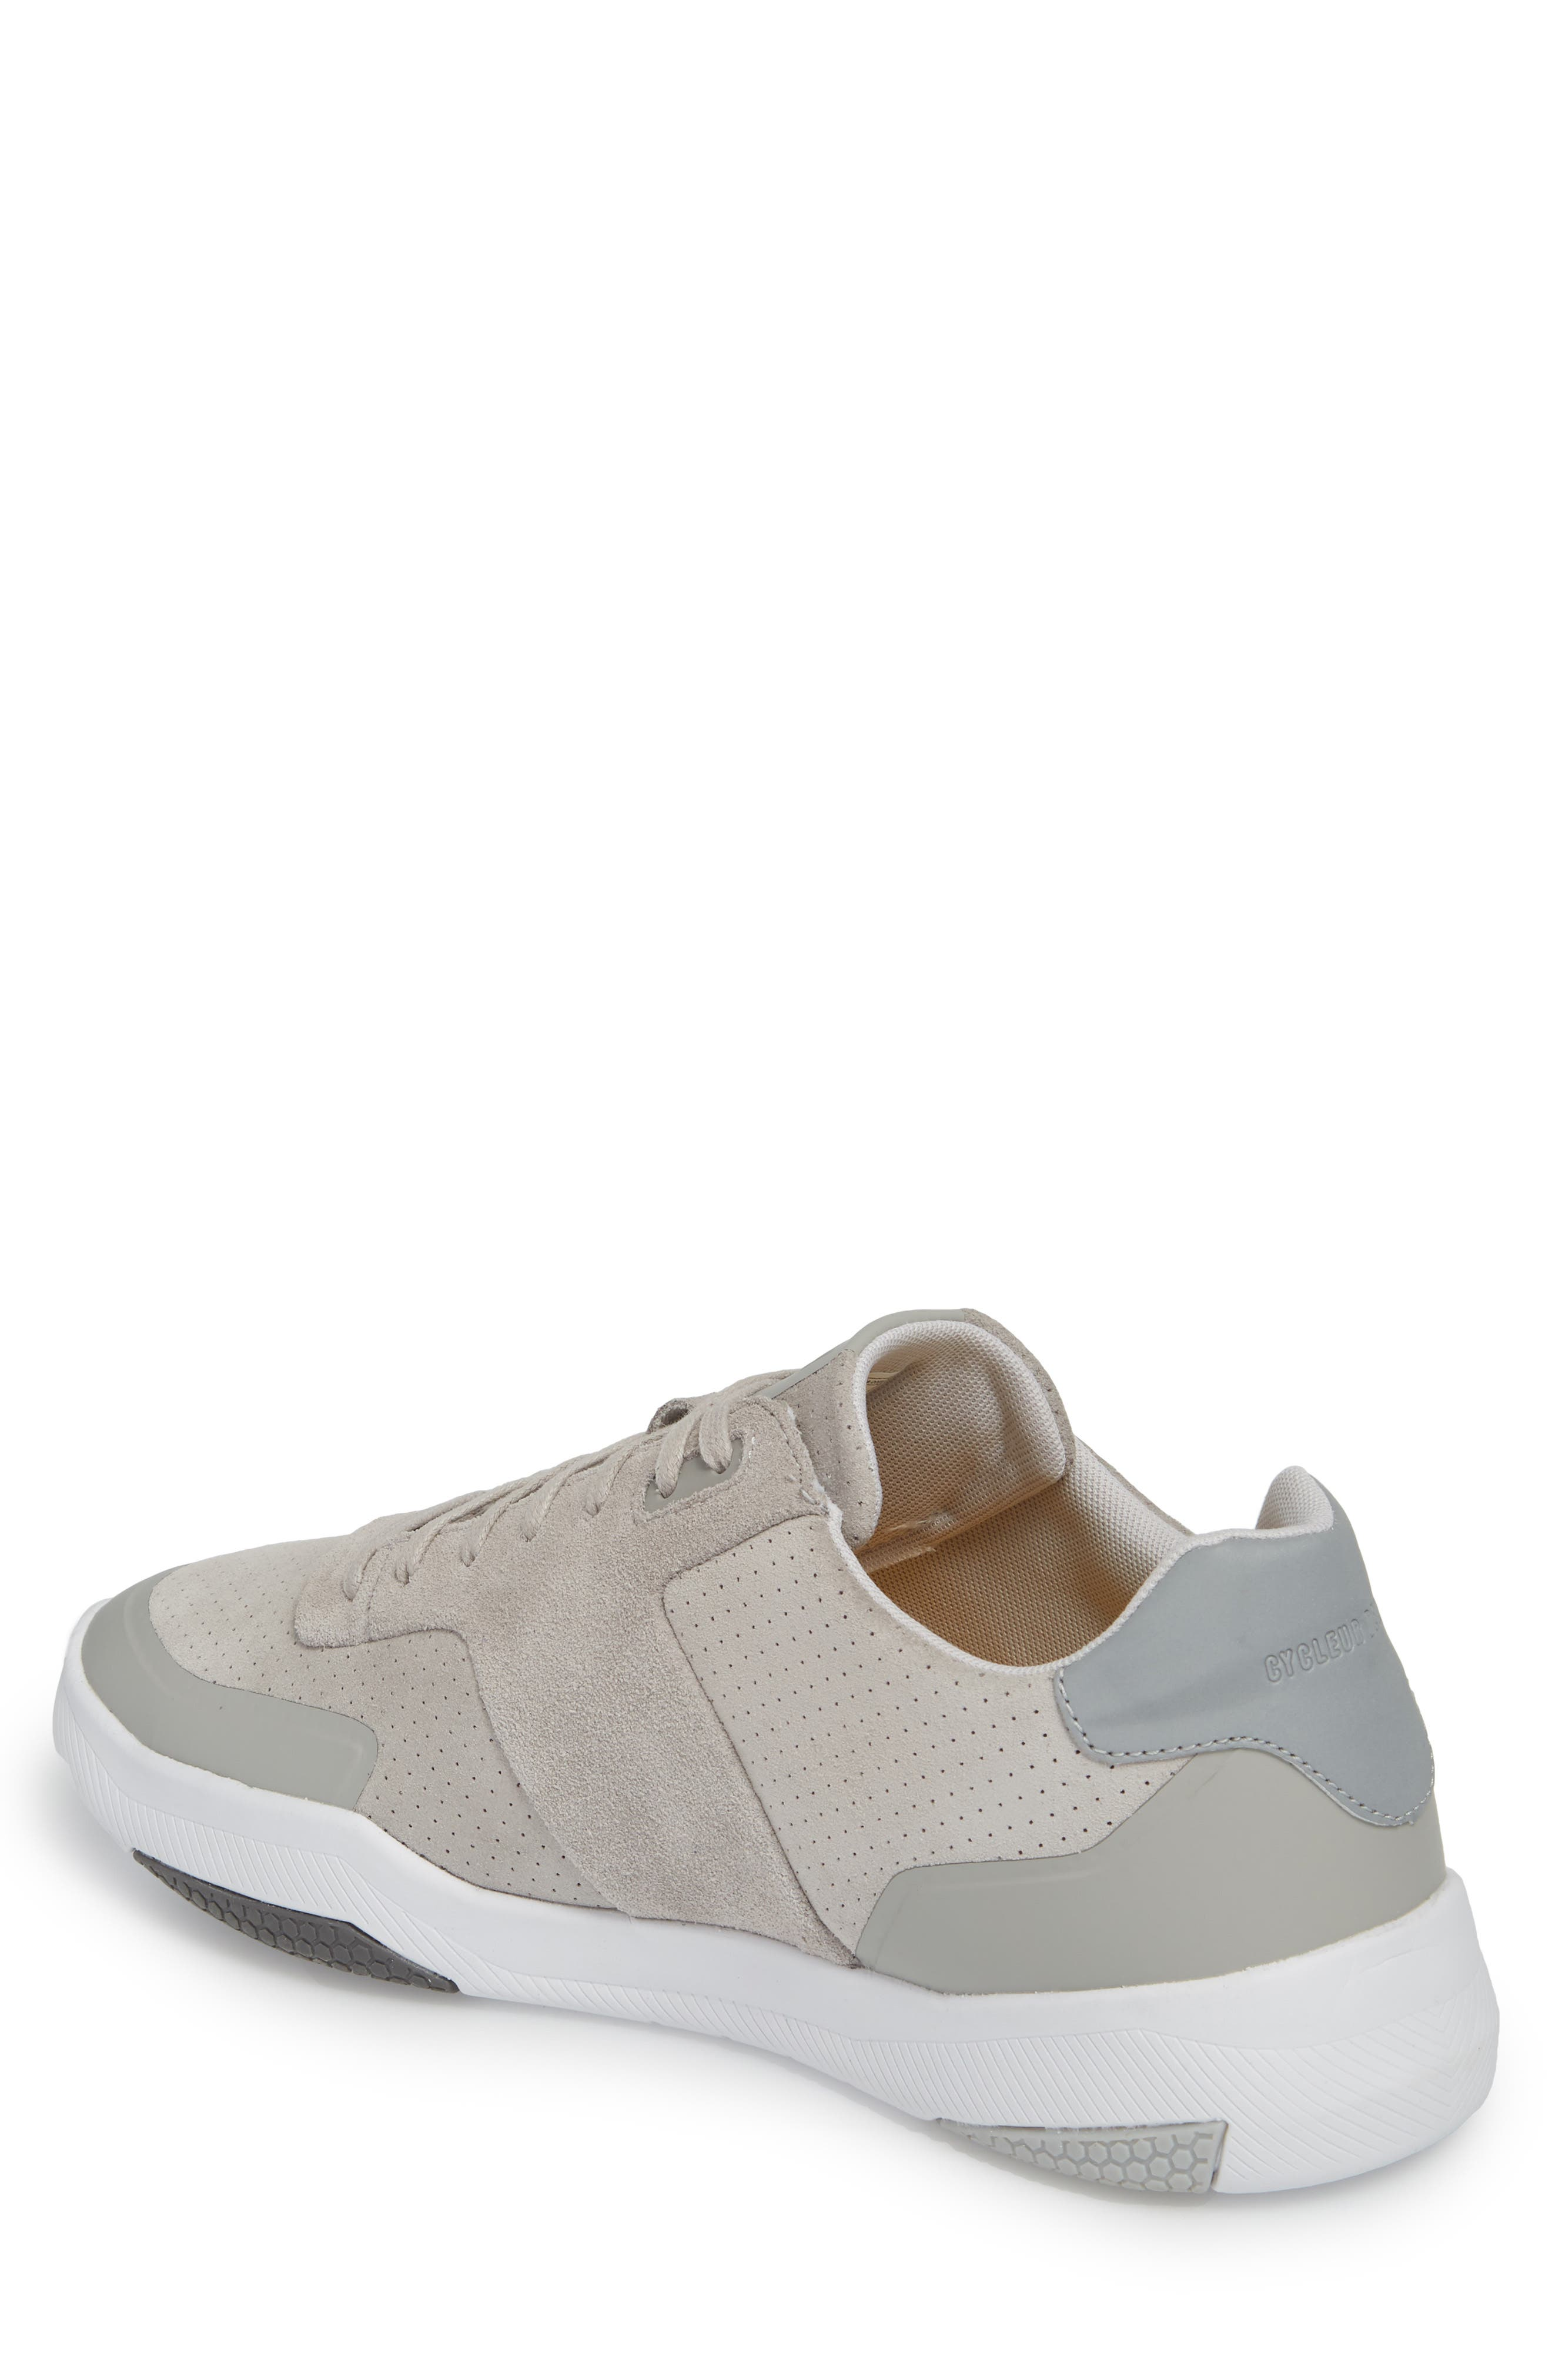 Shima Low Top Sneaker,                             Alternate thumbnail 2, color,                             GREY SUEDE